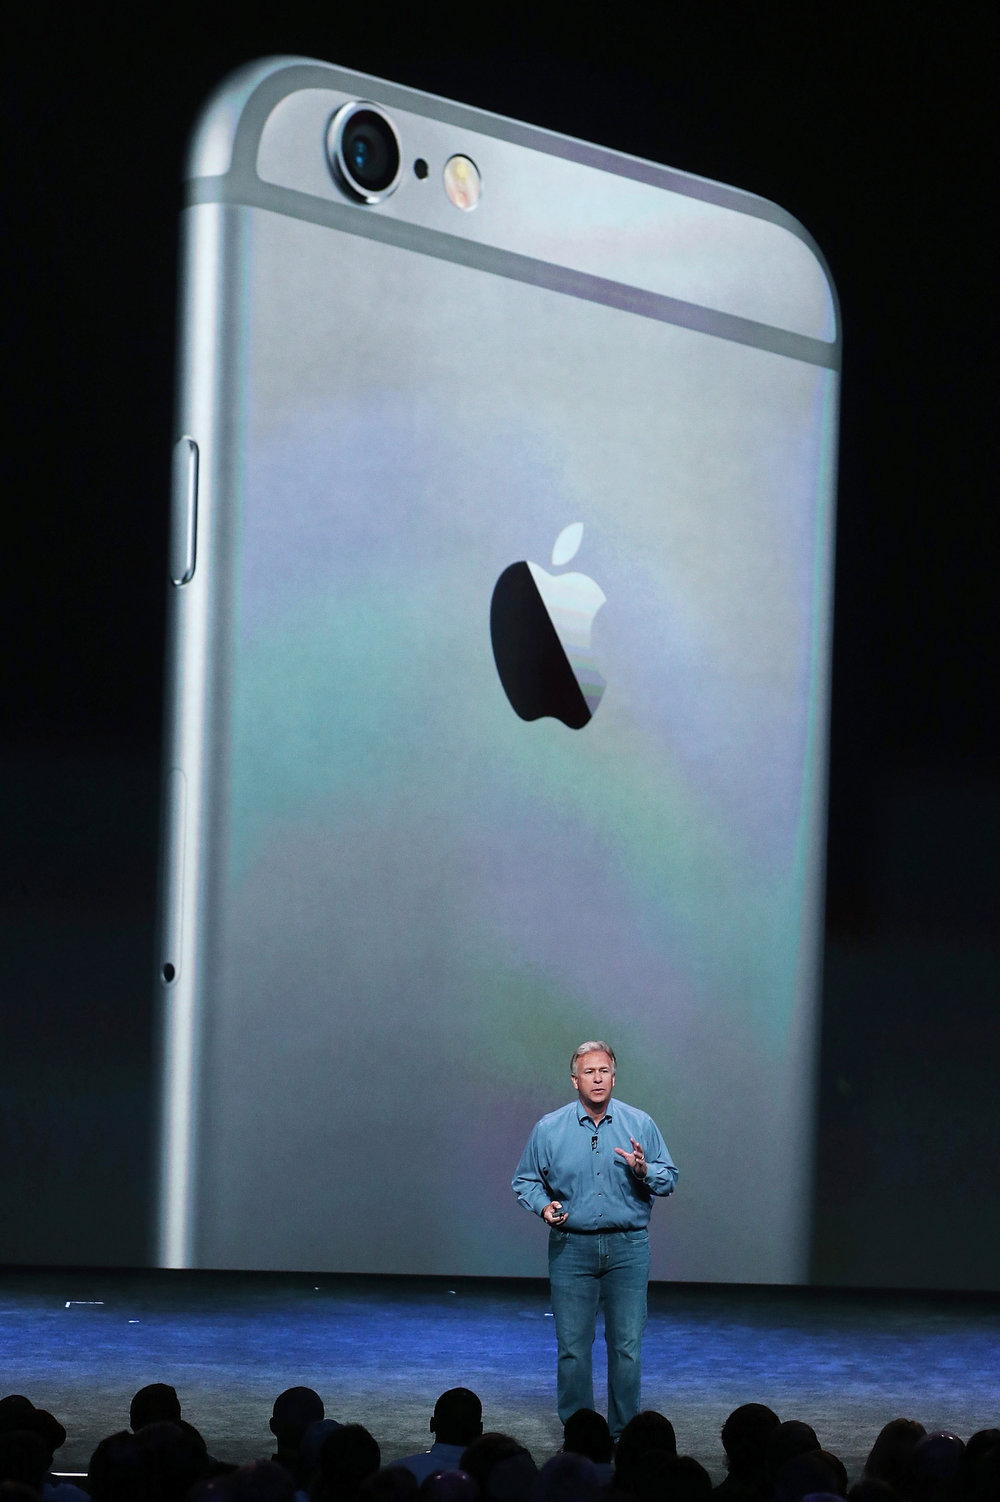 . Apple Senior Vice President of Worldwide Marketing Phil Schiller�announcees the new iPhone 6 during an Apple special event at the Flint Center for the Performing Arts on September 9, 2014 in Cupertino, California. Apple unveiled the two new iPhones the iPhone 6 and iPhone 6 Plus.  (Photo by Justin Sullivan/Getty Images)